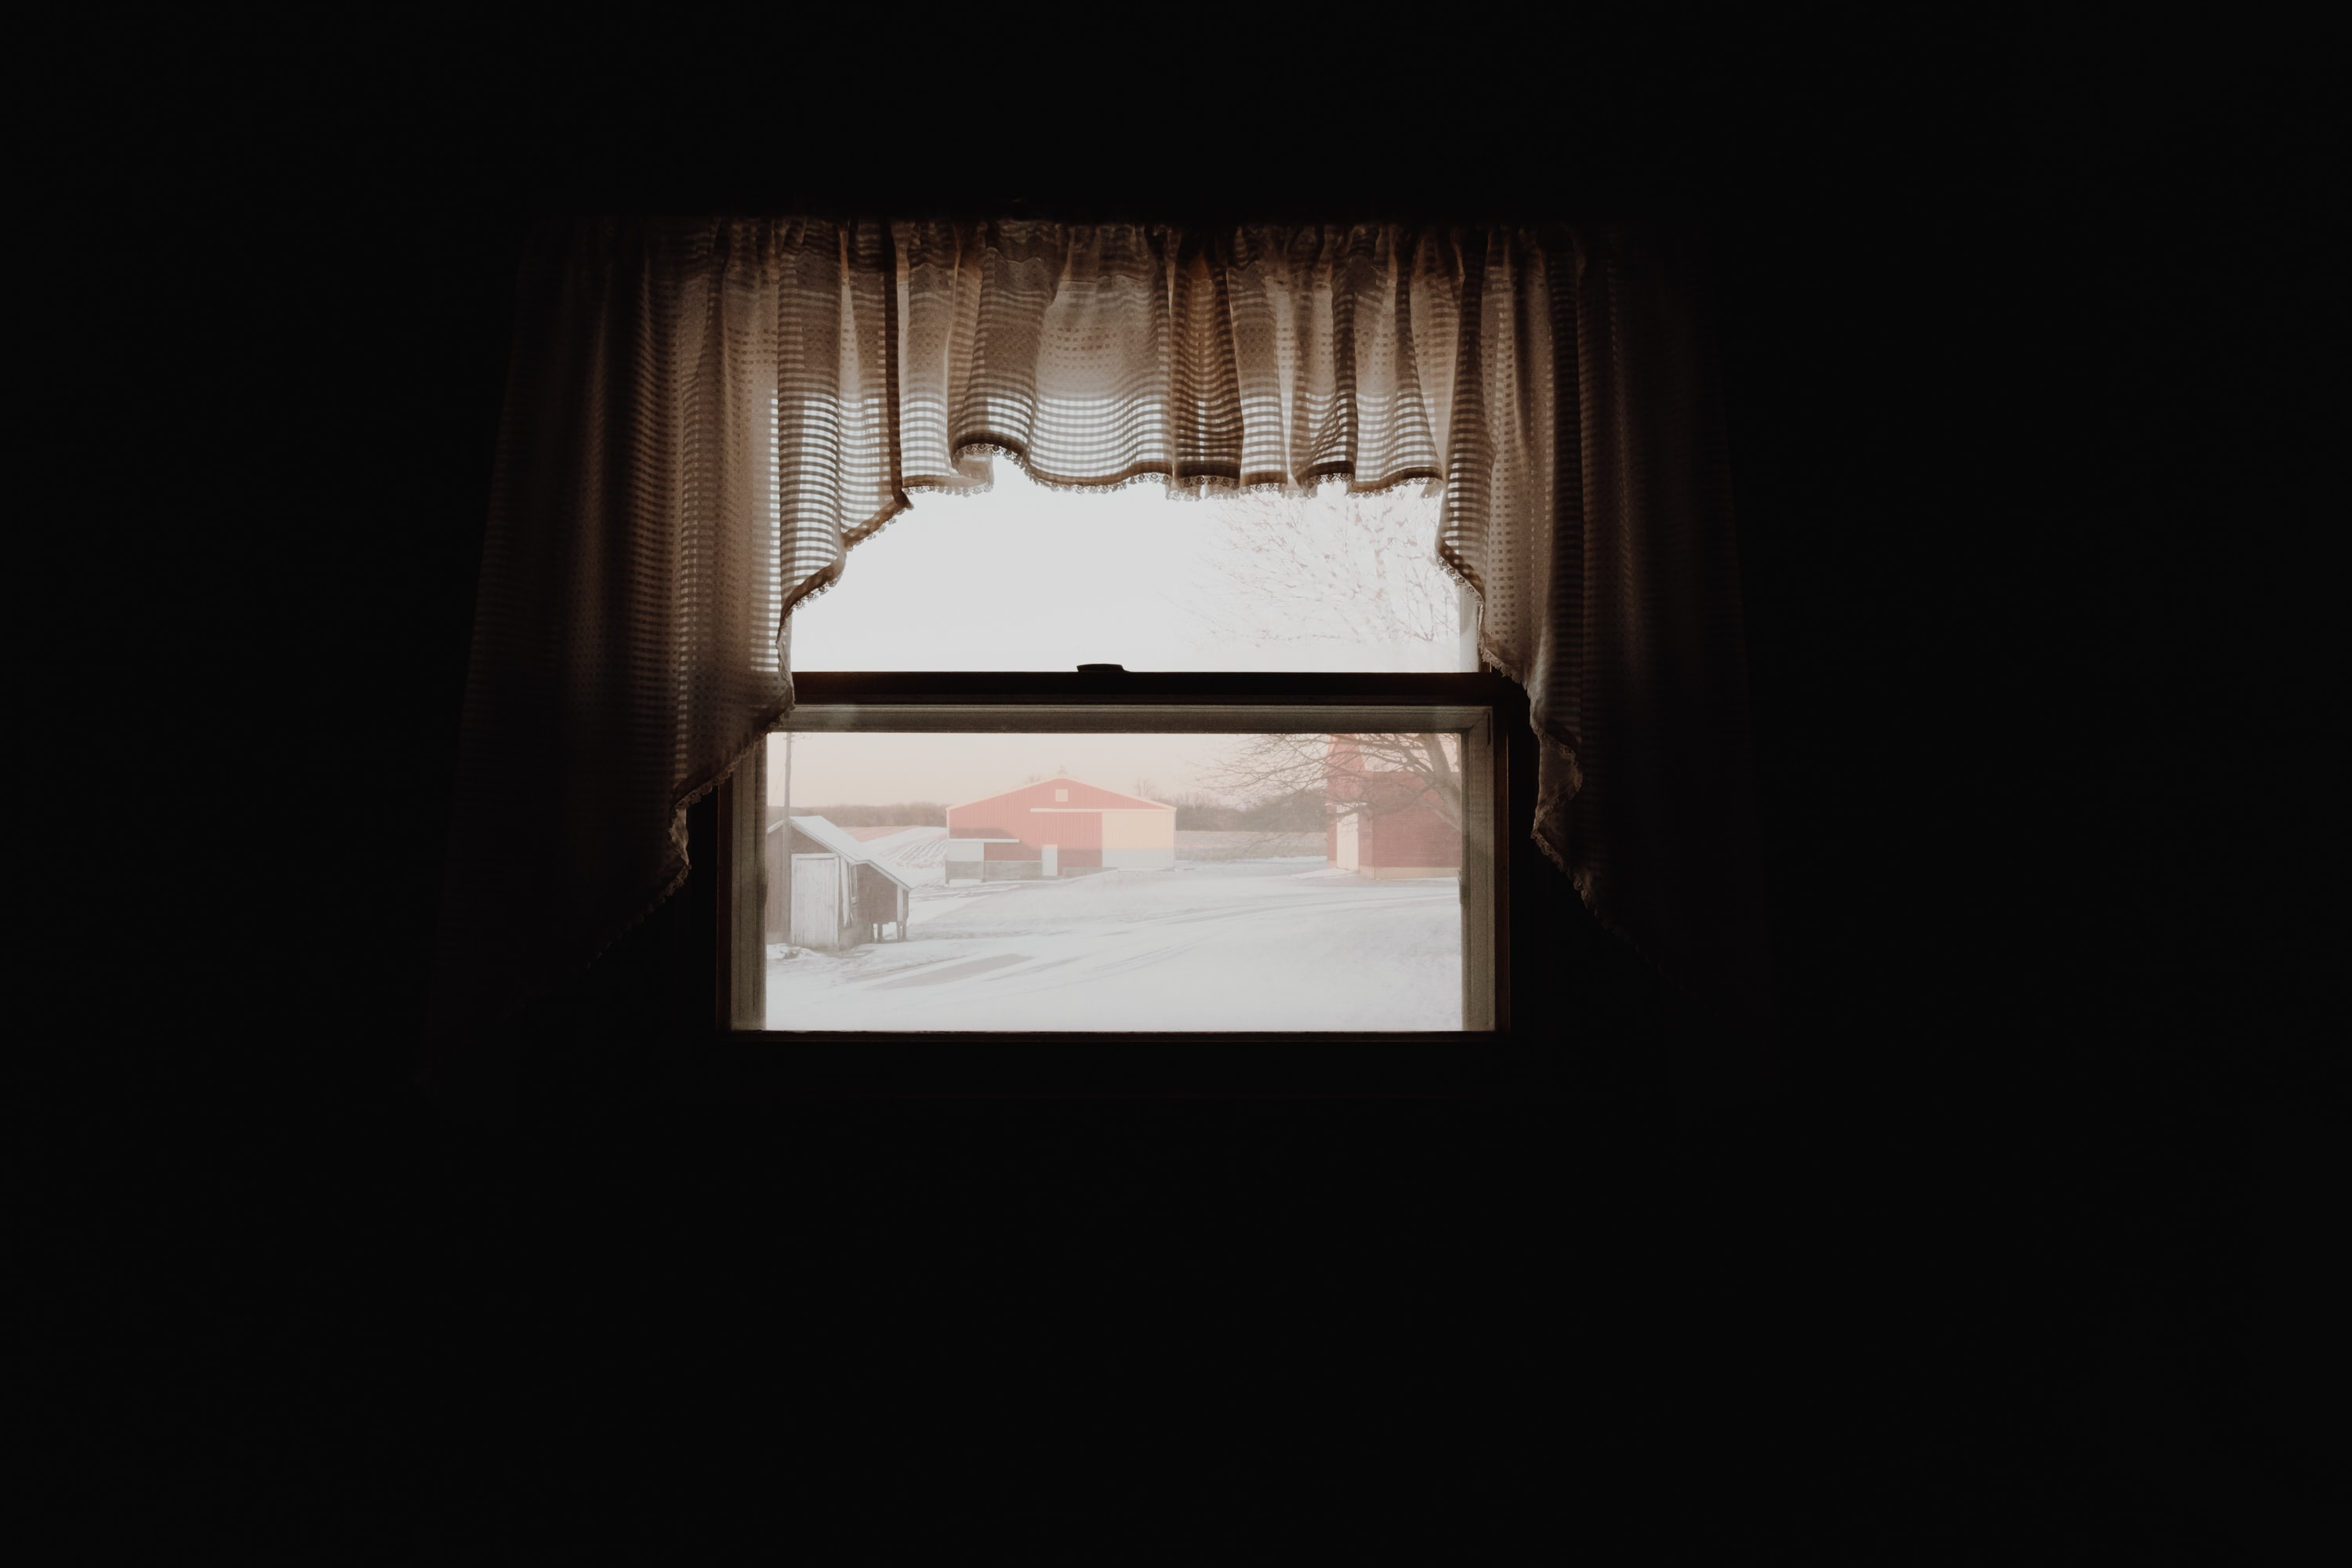 clear glass window with white curtain